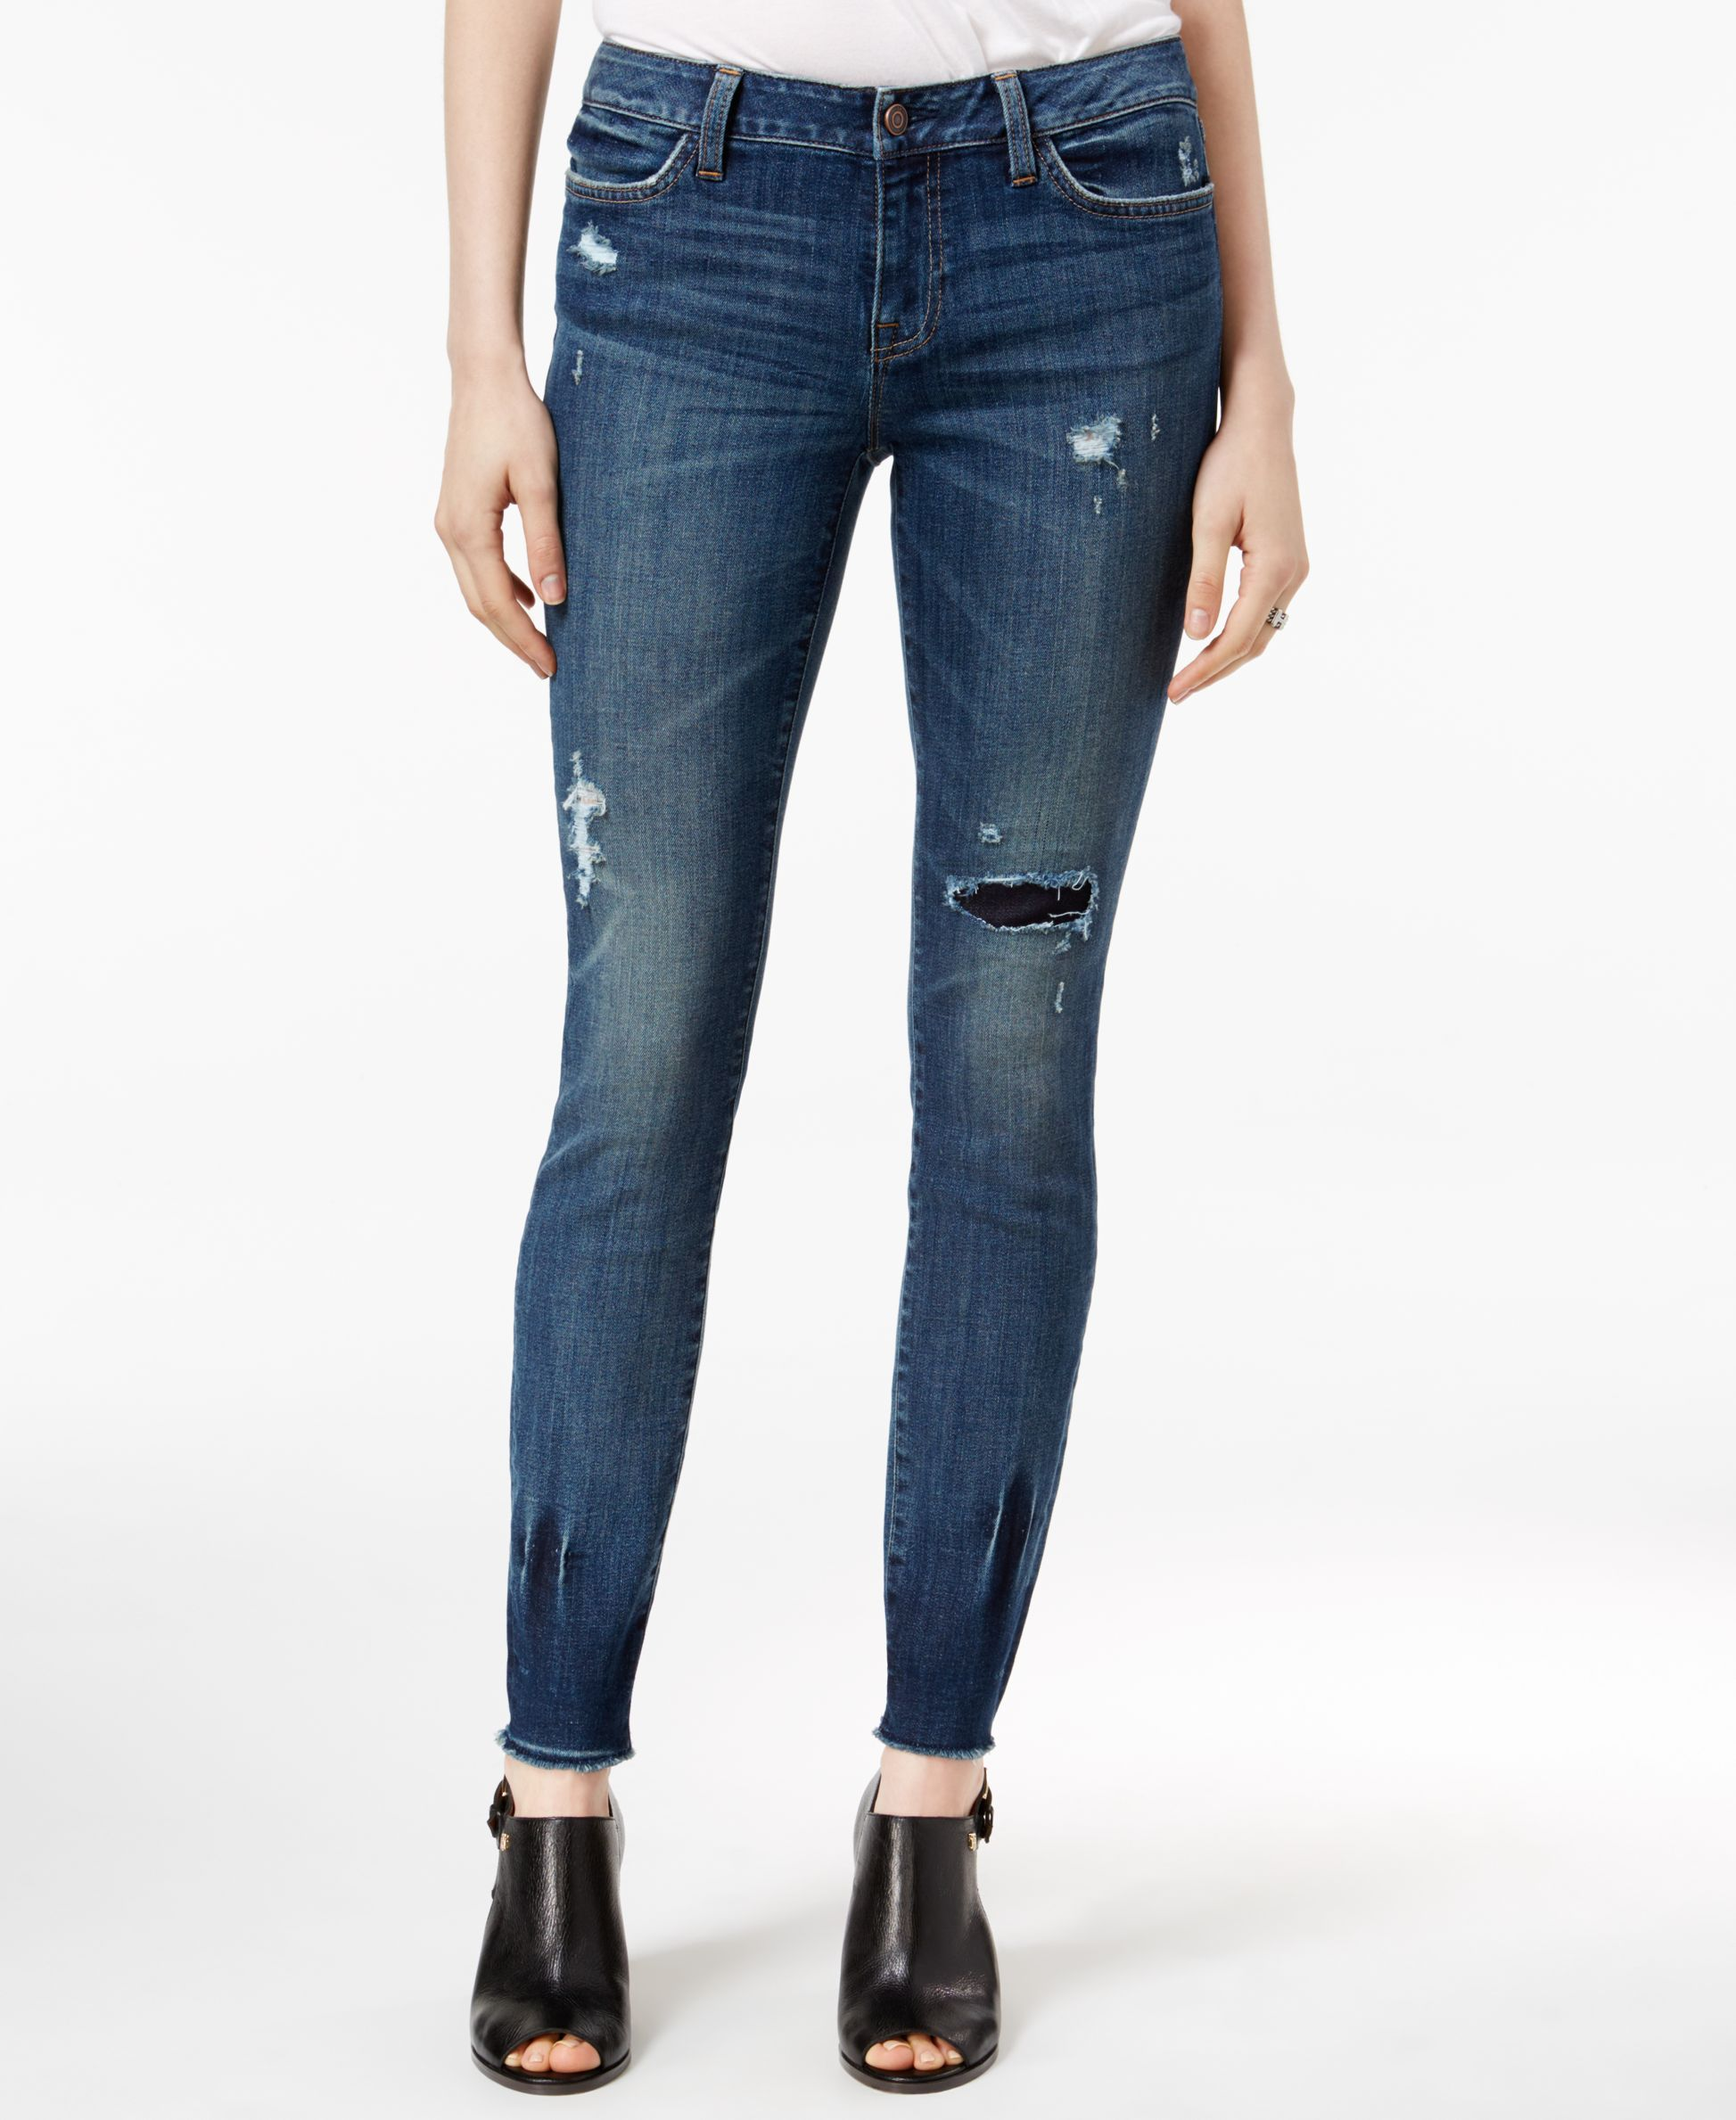 f995f0ae Tommy Hilfiger Ripped Rinse Wash Skinny Jeans | Things I love ...